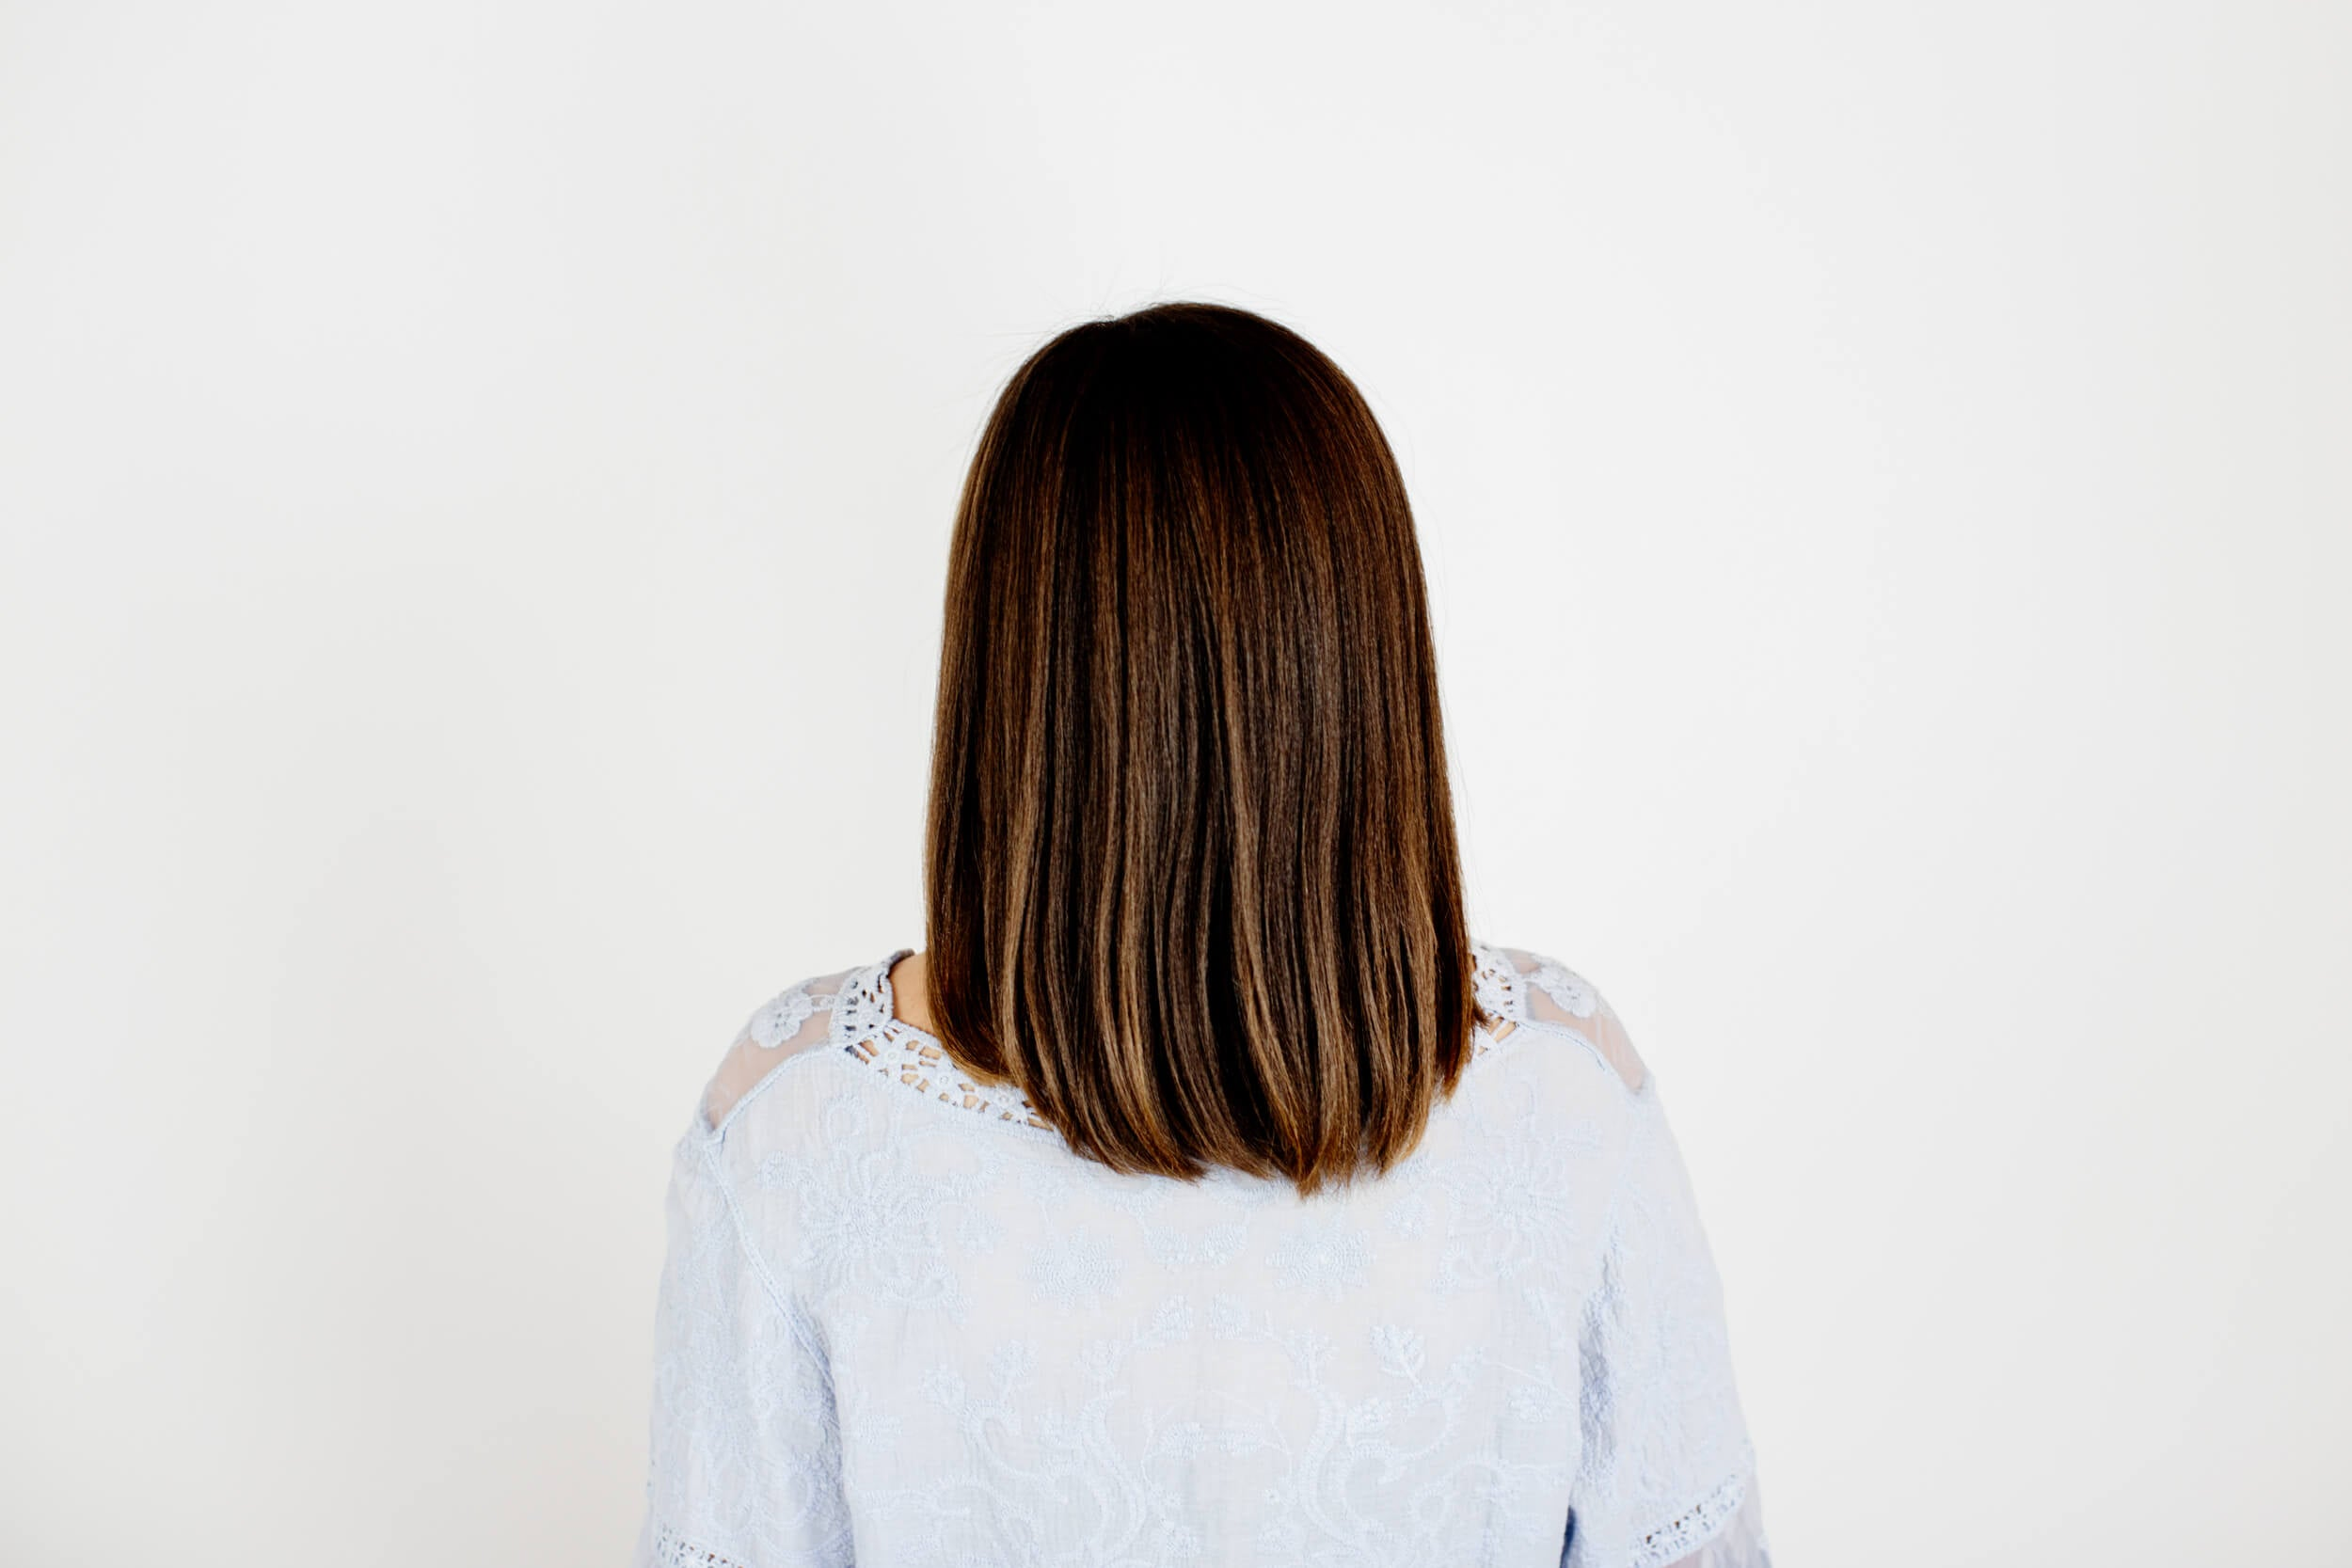 A woman shows the back of her hair that has been straightened.